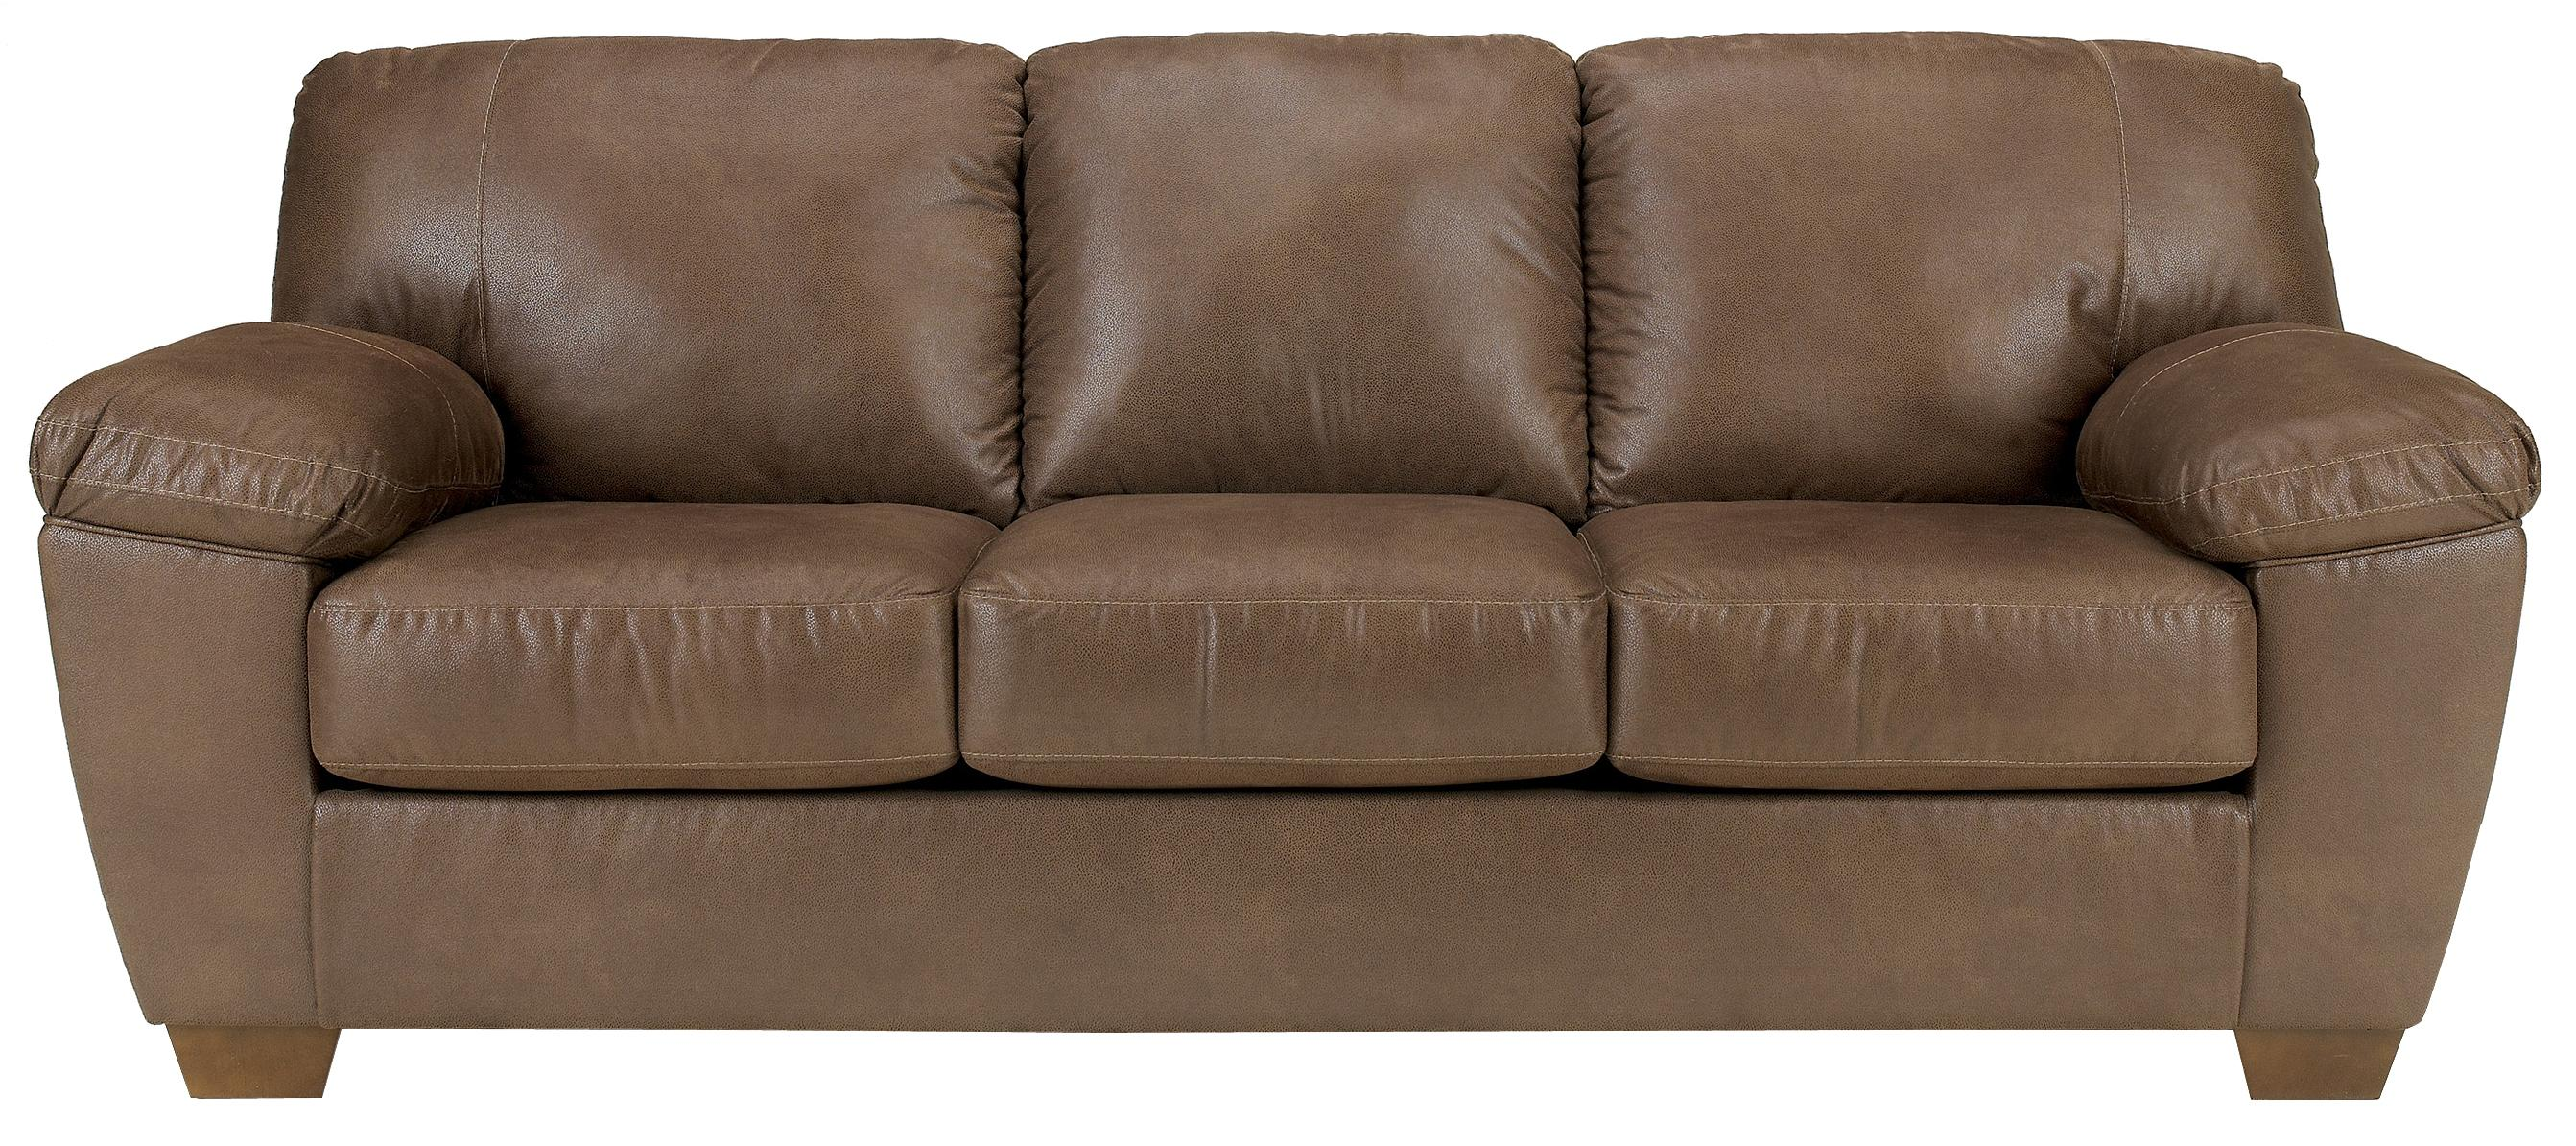 Signature Design by Ashley Amazon - Walnut Sofa - Item Number: 6750538